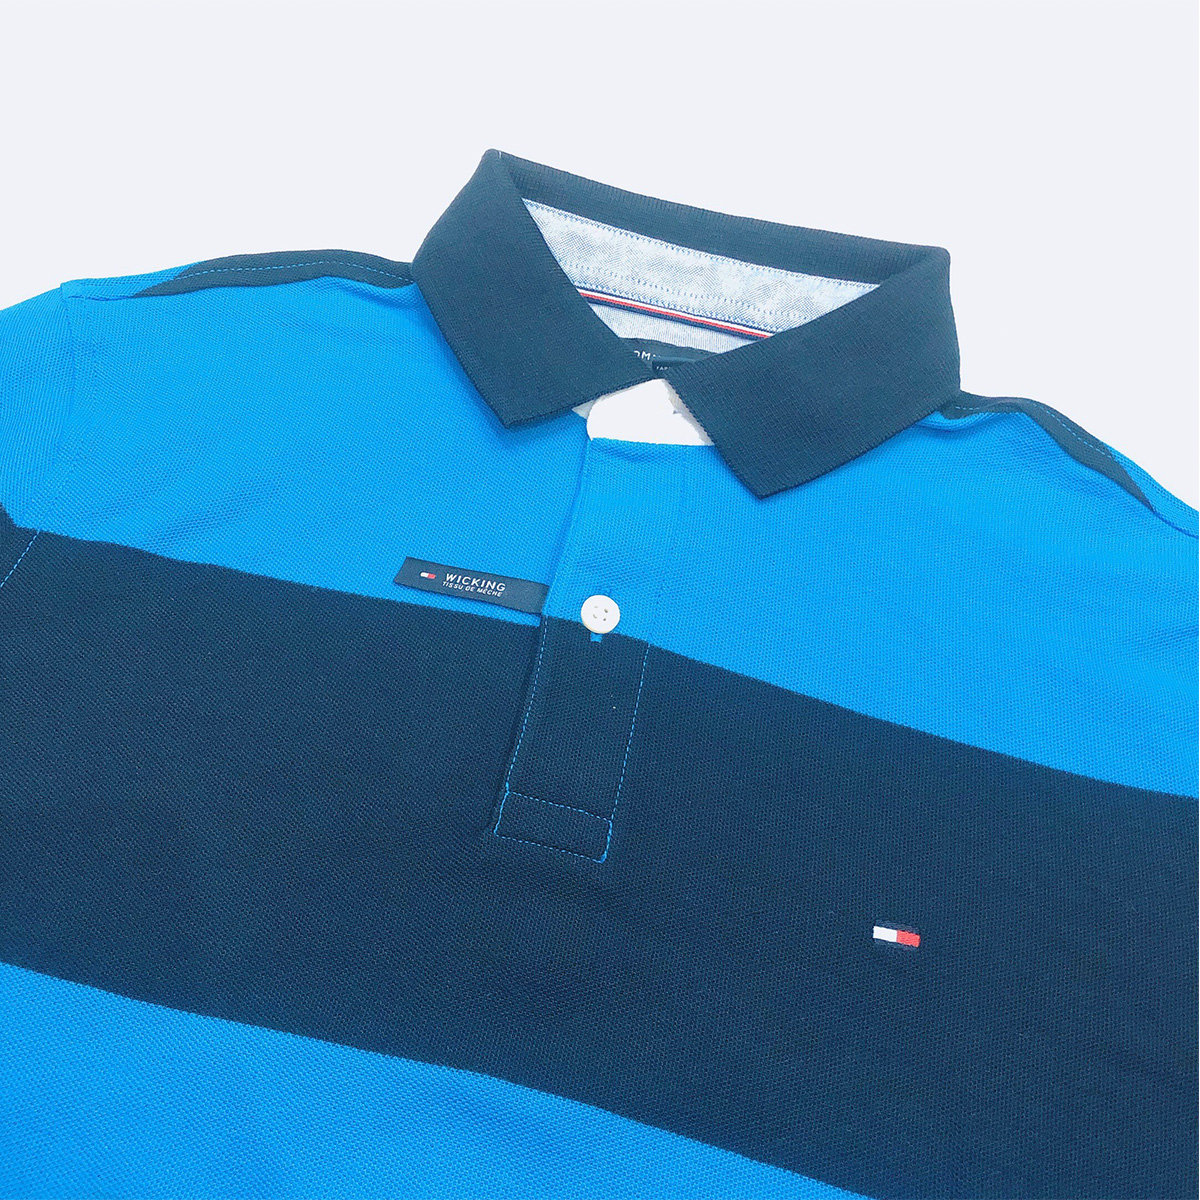 ao-polo-tommy-hilfiger-regular-fit-43